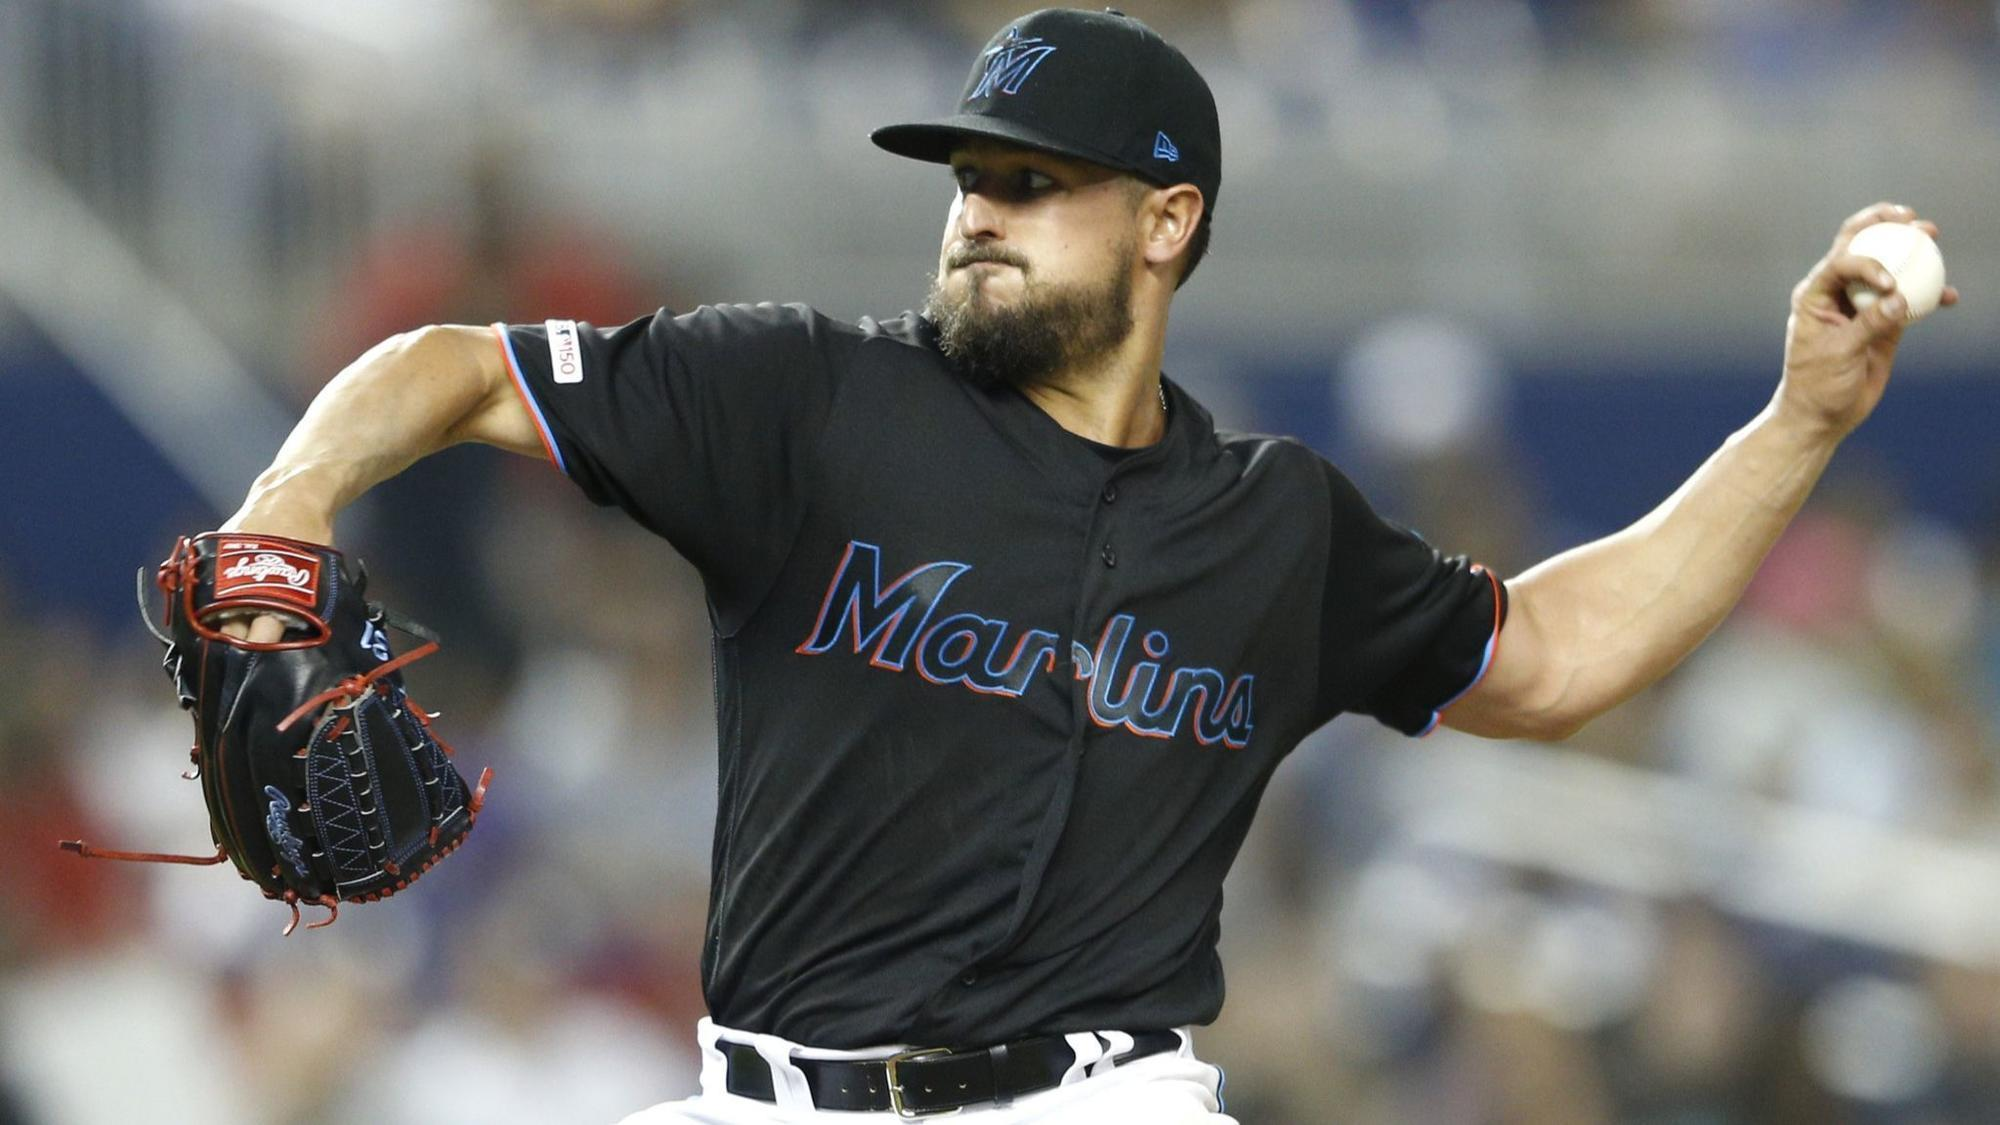 Marlins mailbag — All-Star candidates, top prospects and could TV deal be lower than expected?